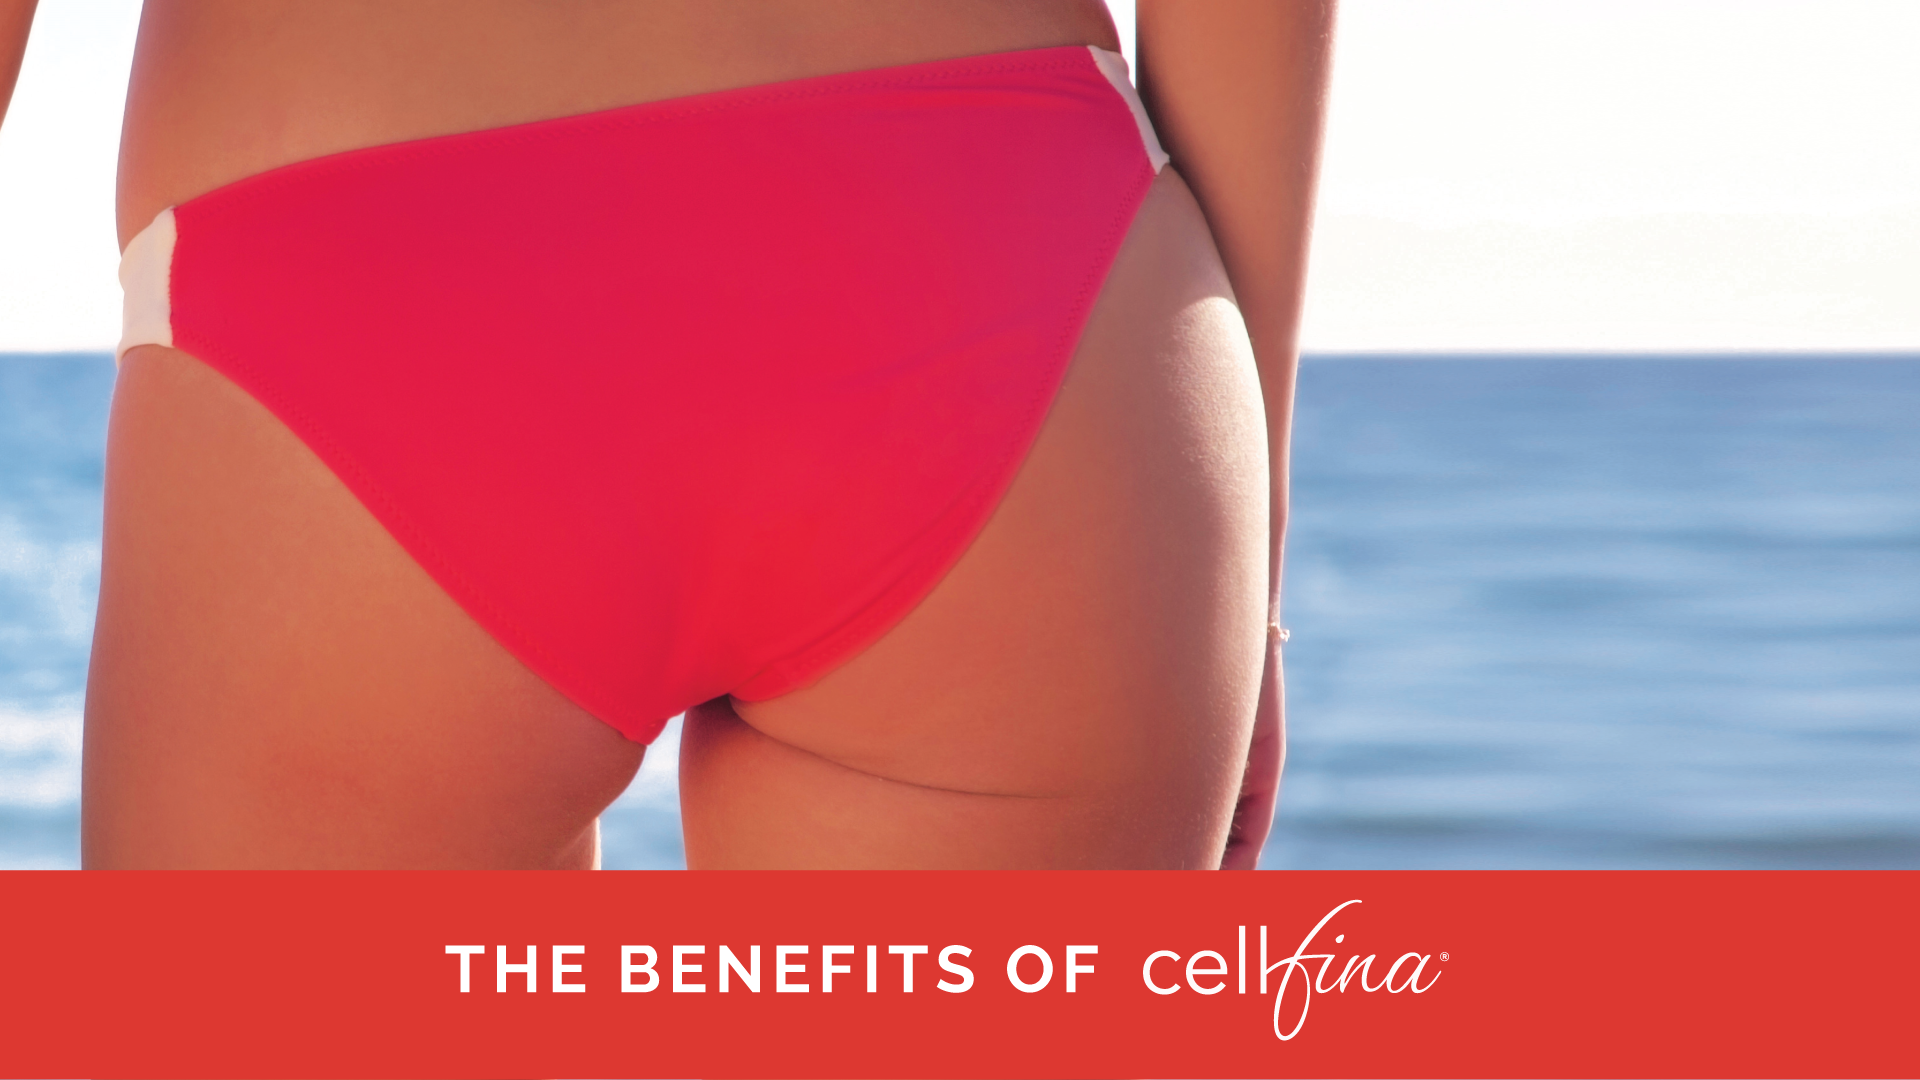 The Benefits of Cellfina